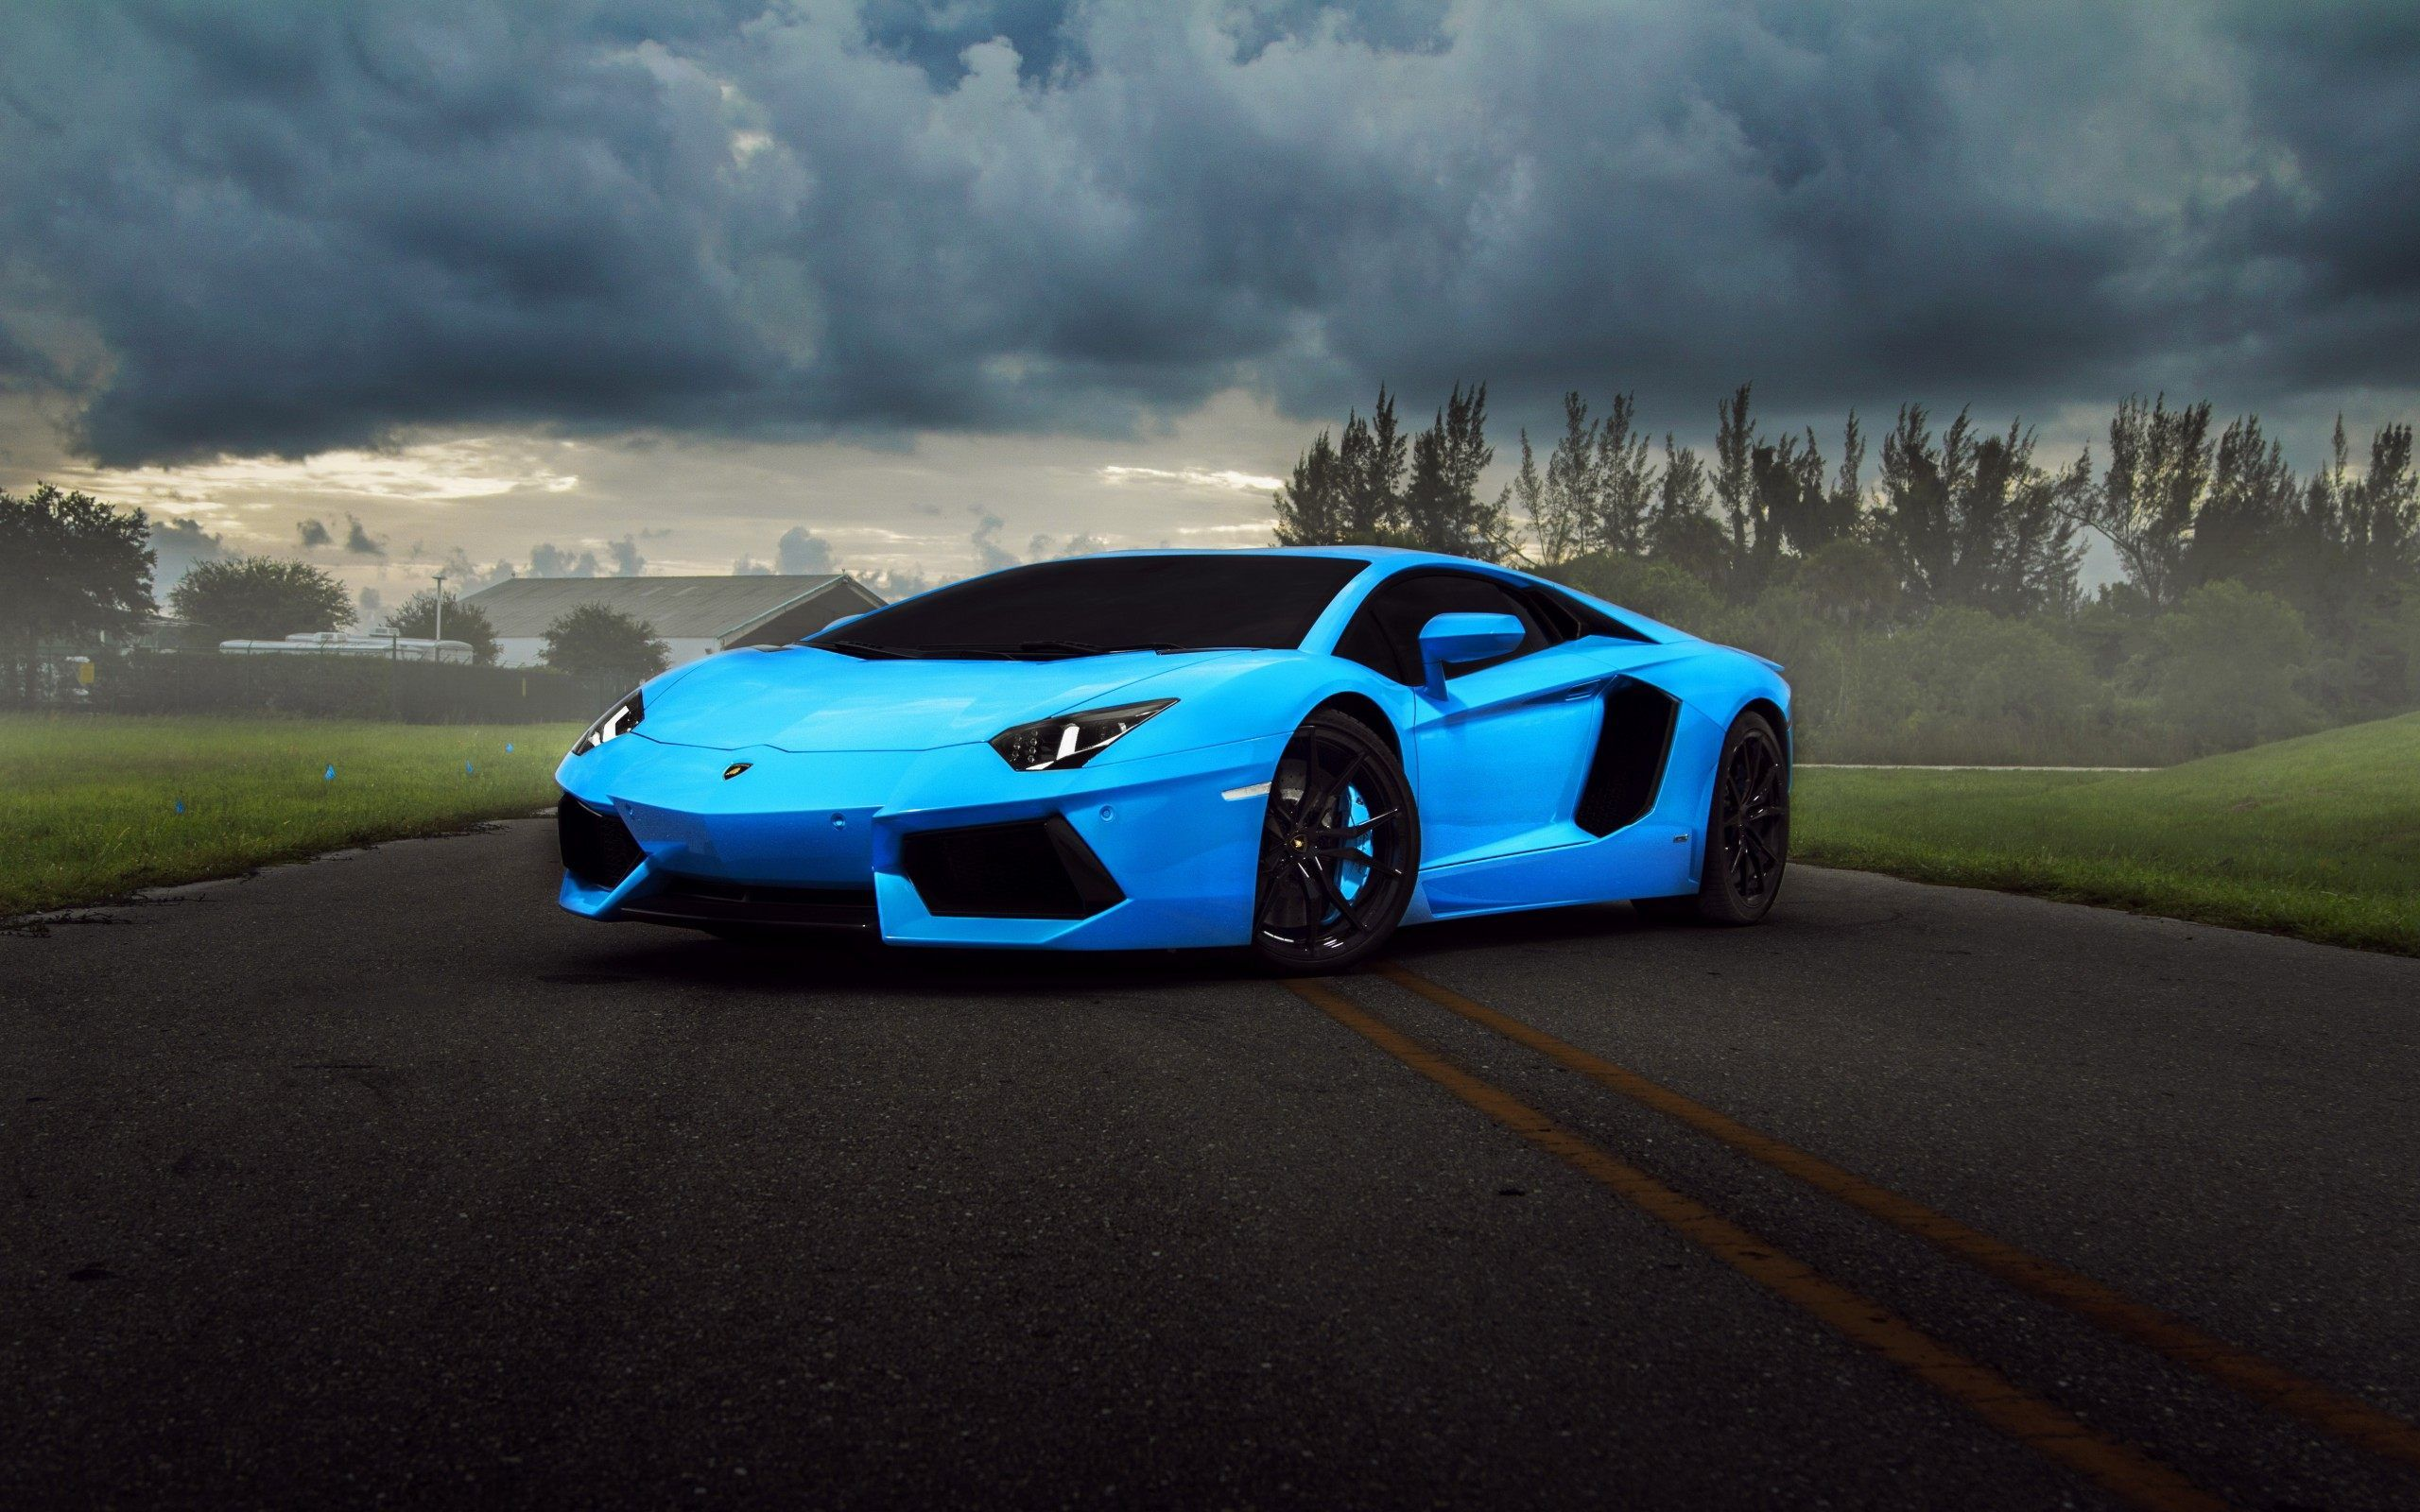 Free Hd Car Wallpapers For Windows 7 Ultimate High Resolution